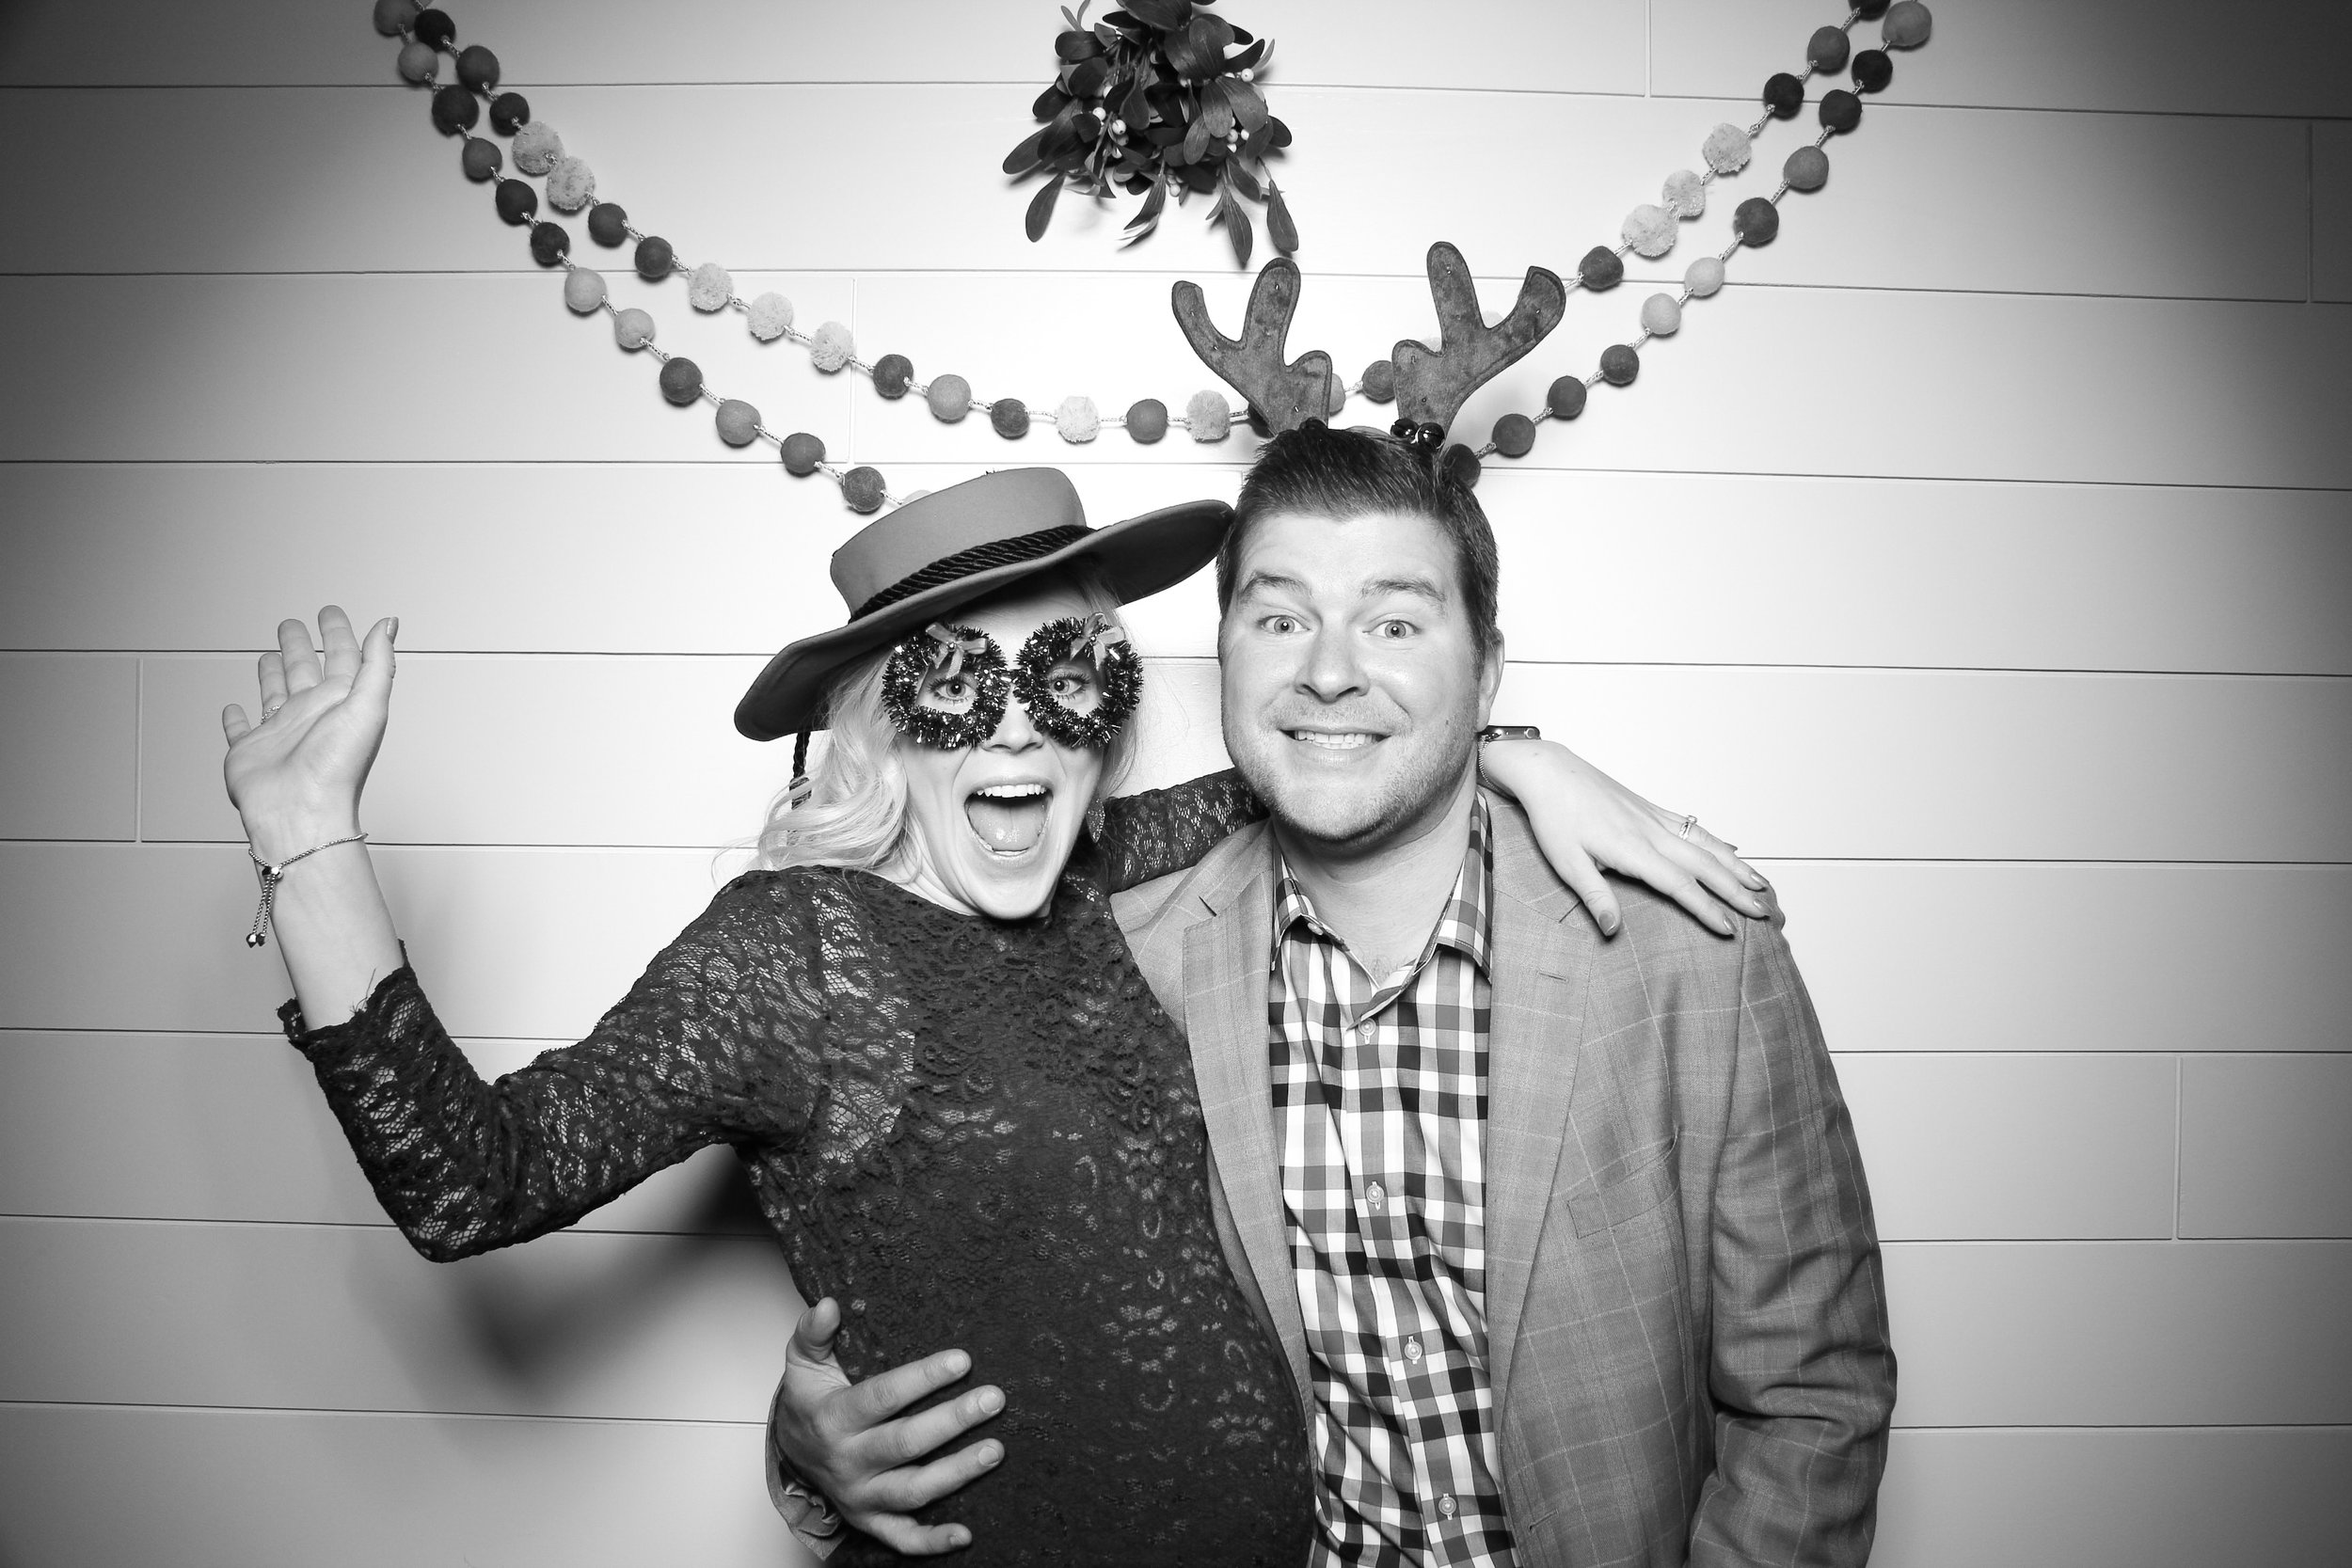 Chicago_Vintage_Photobooth_Christmas_Holiday_Party_09.jpg